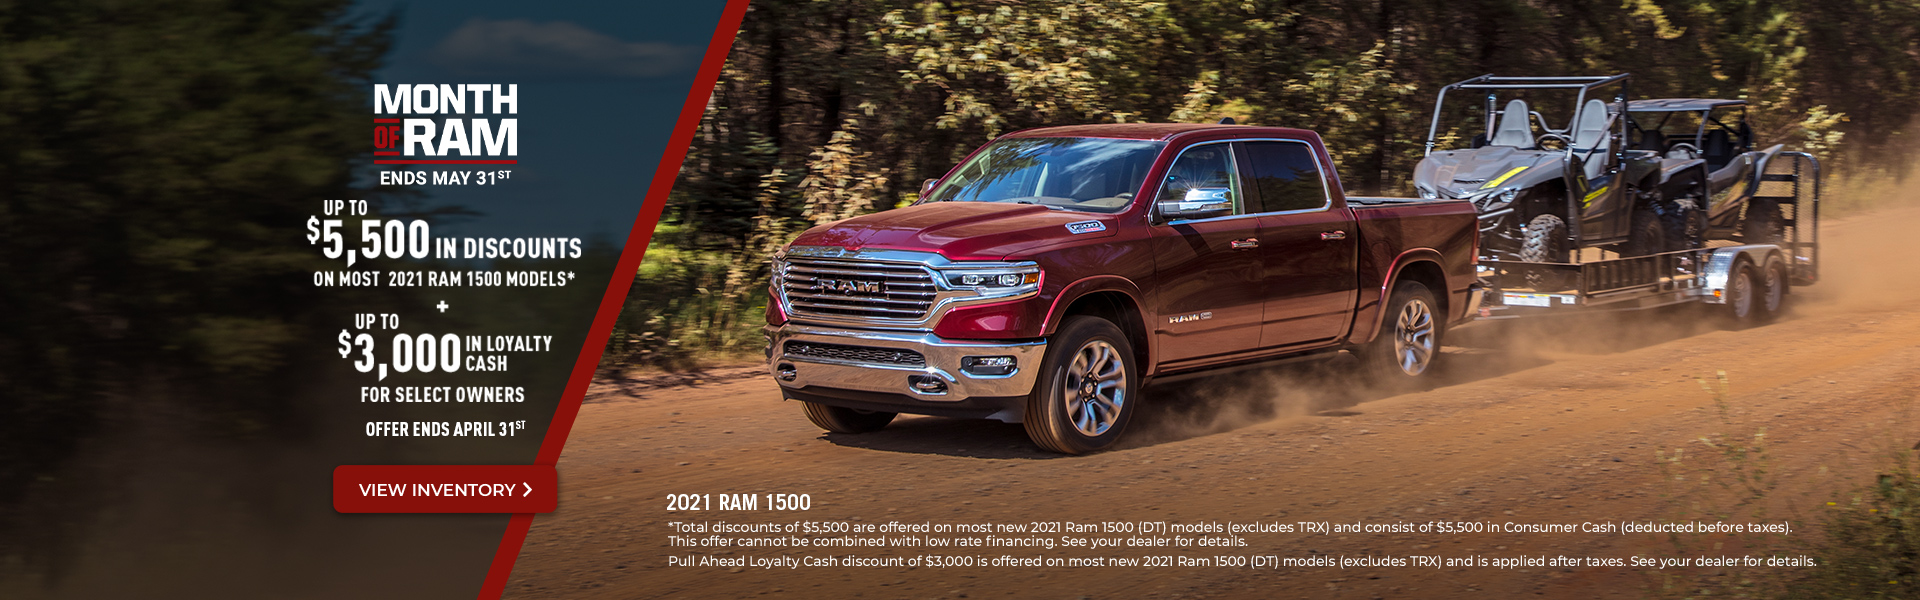 2021 RAM 1500 Promotional Banner